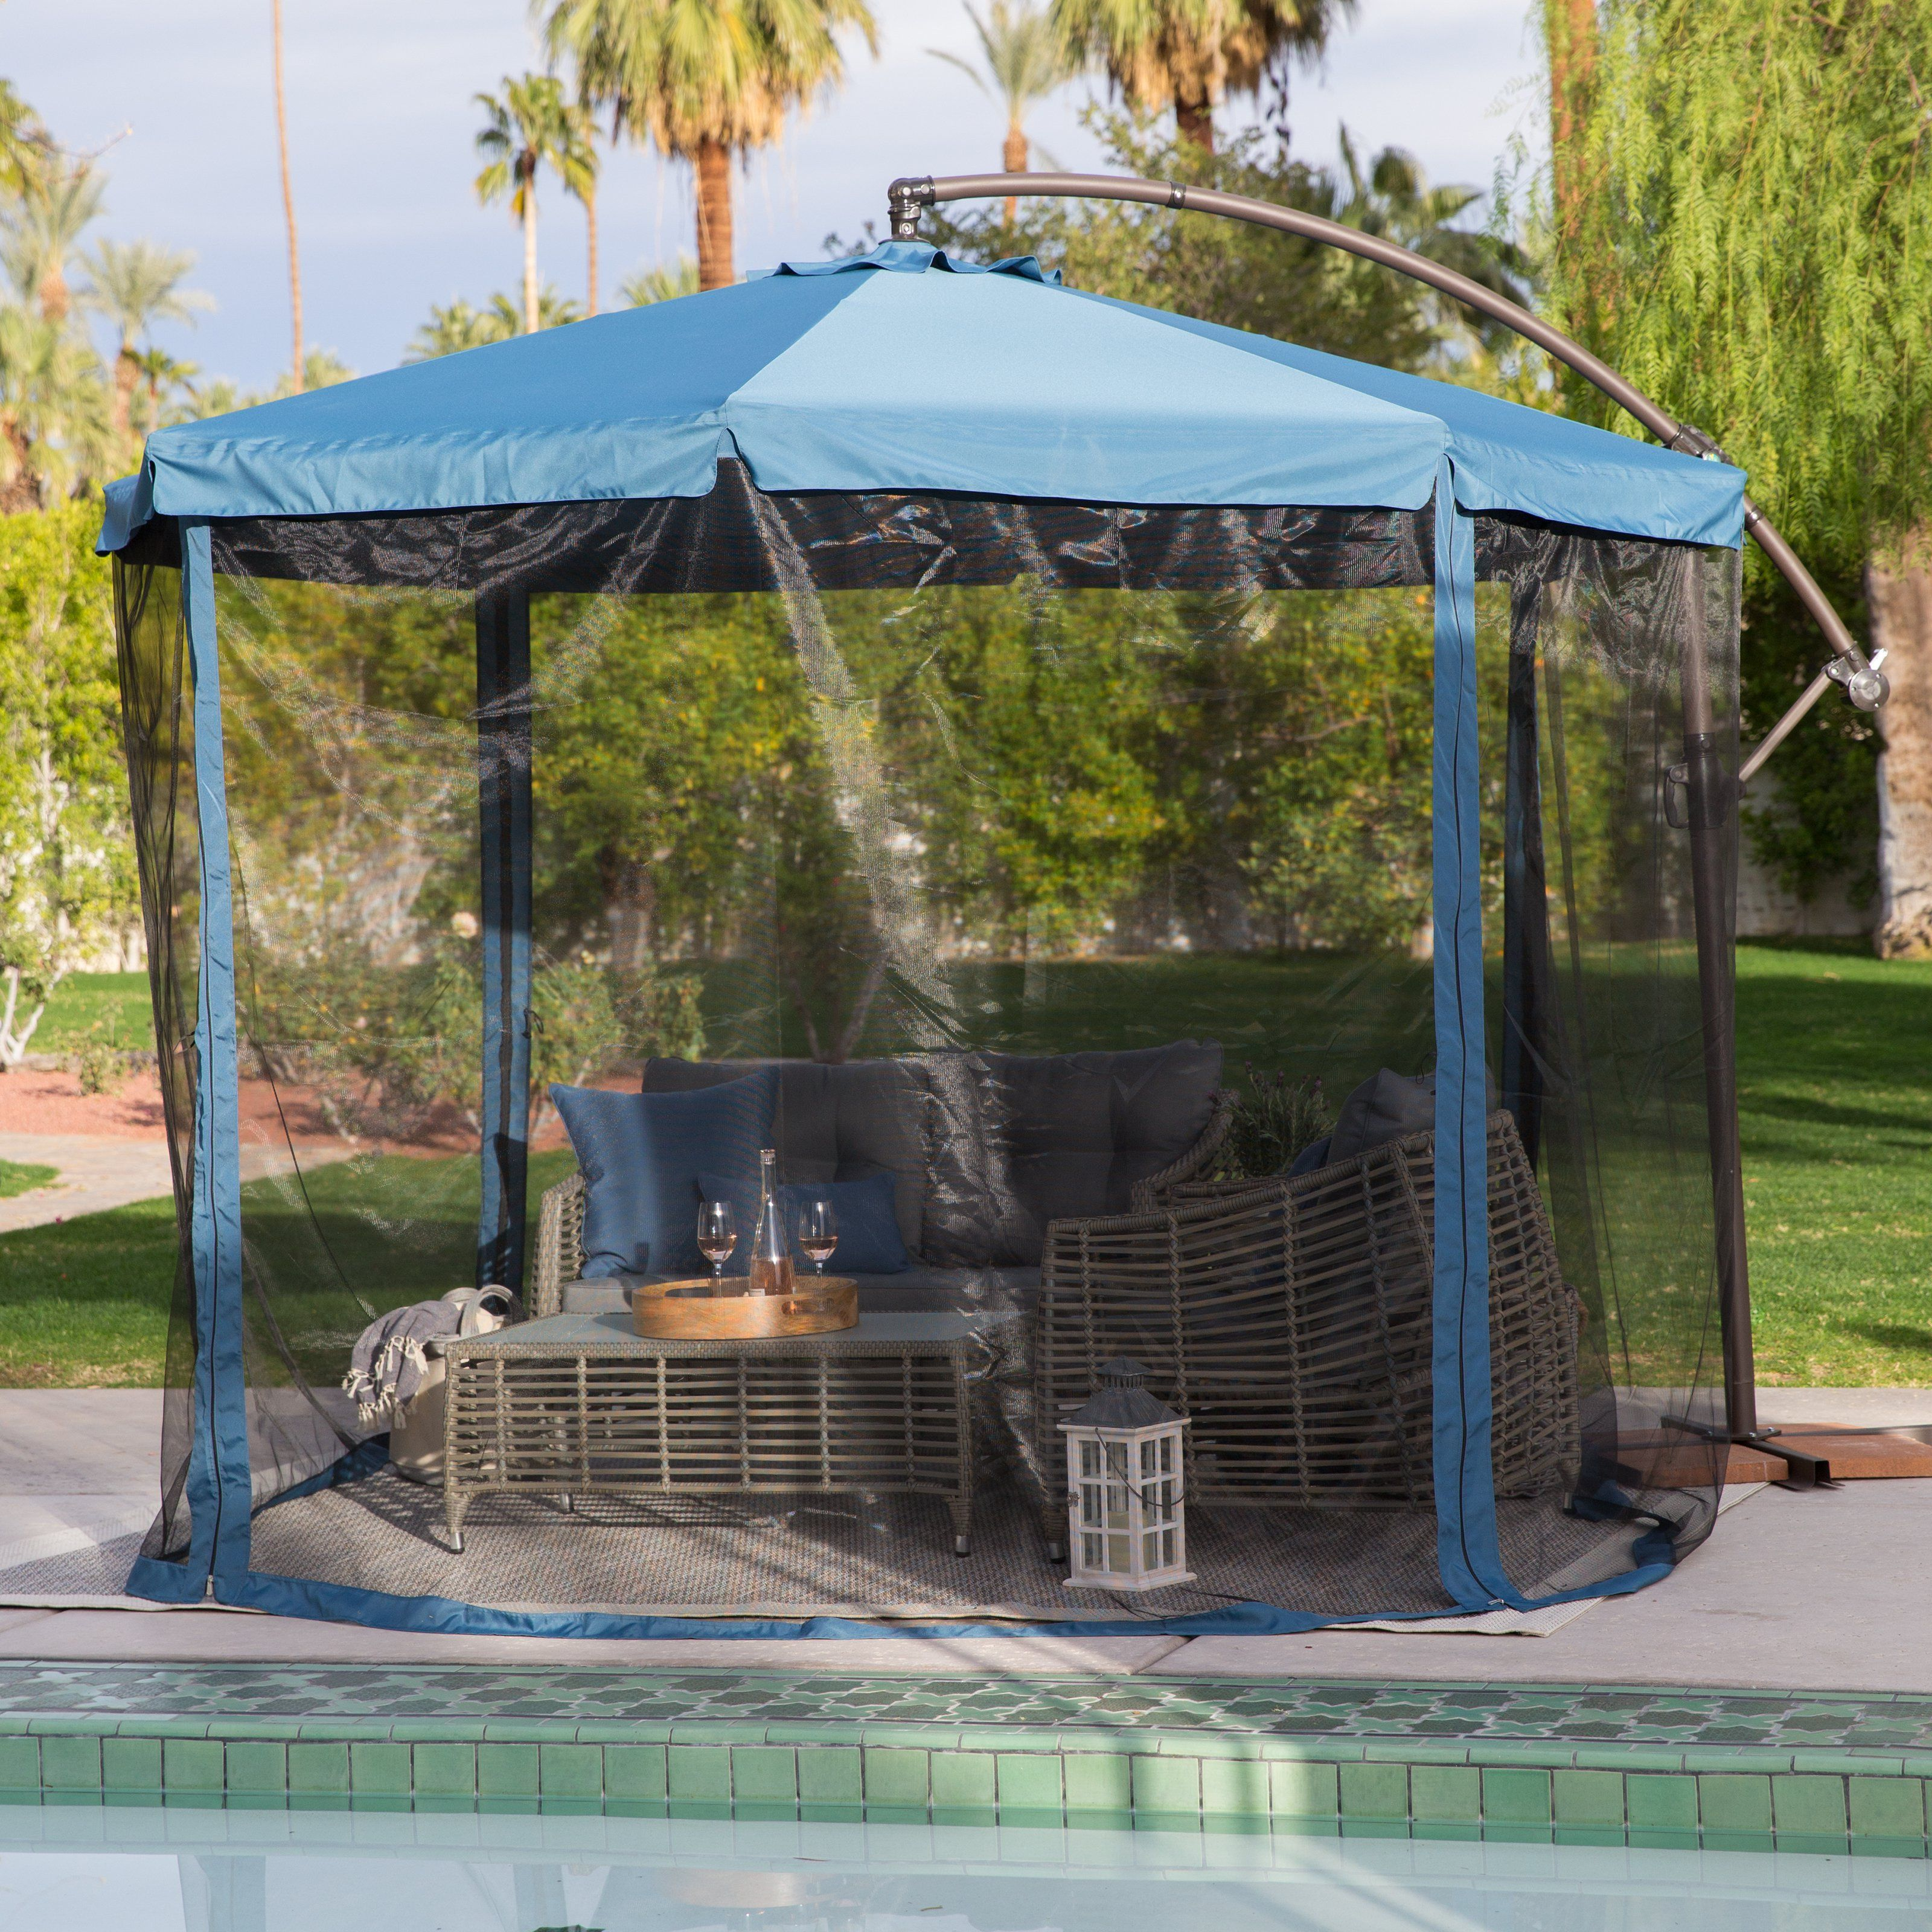 Exceptional Steel Offset Patio Umbrella With Detachable Netting   Now You Can Enjoy  Refreshing Shade And Protection From Pests, Too! The Coral Coast 11 Ft. Nice Design